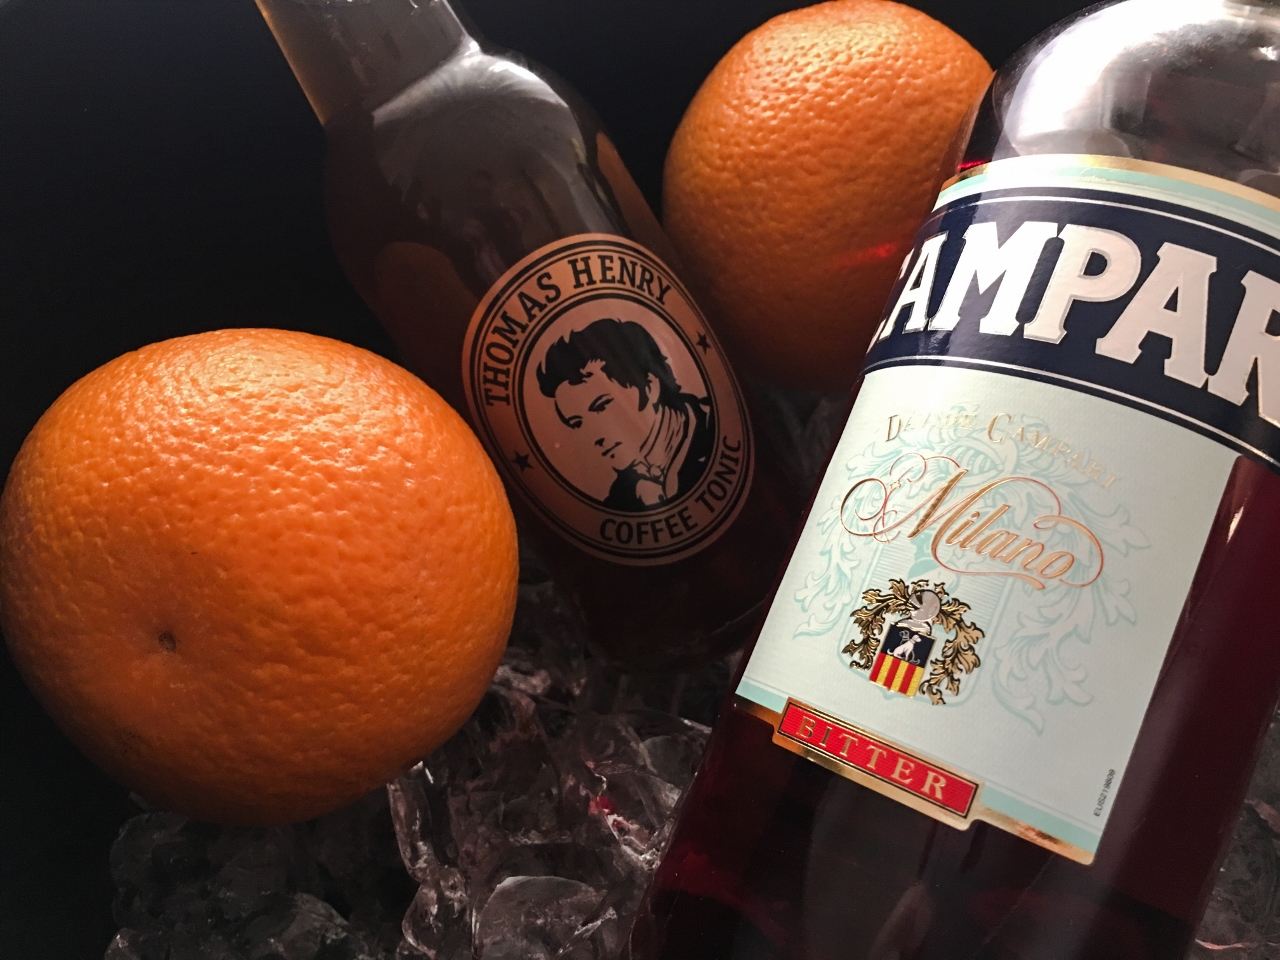 thomas henri coffee tonic filler campari